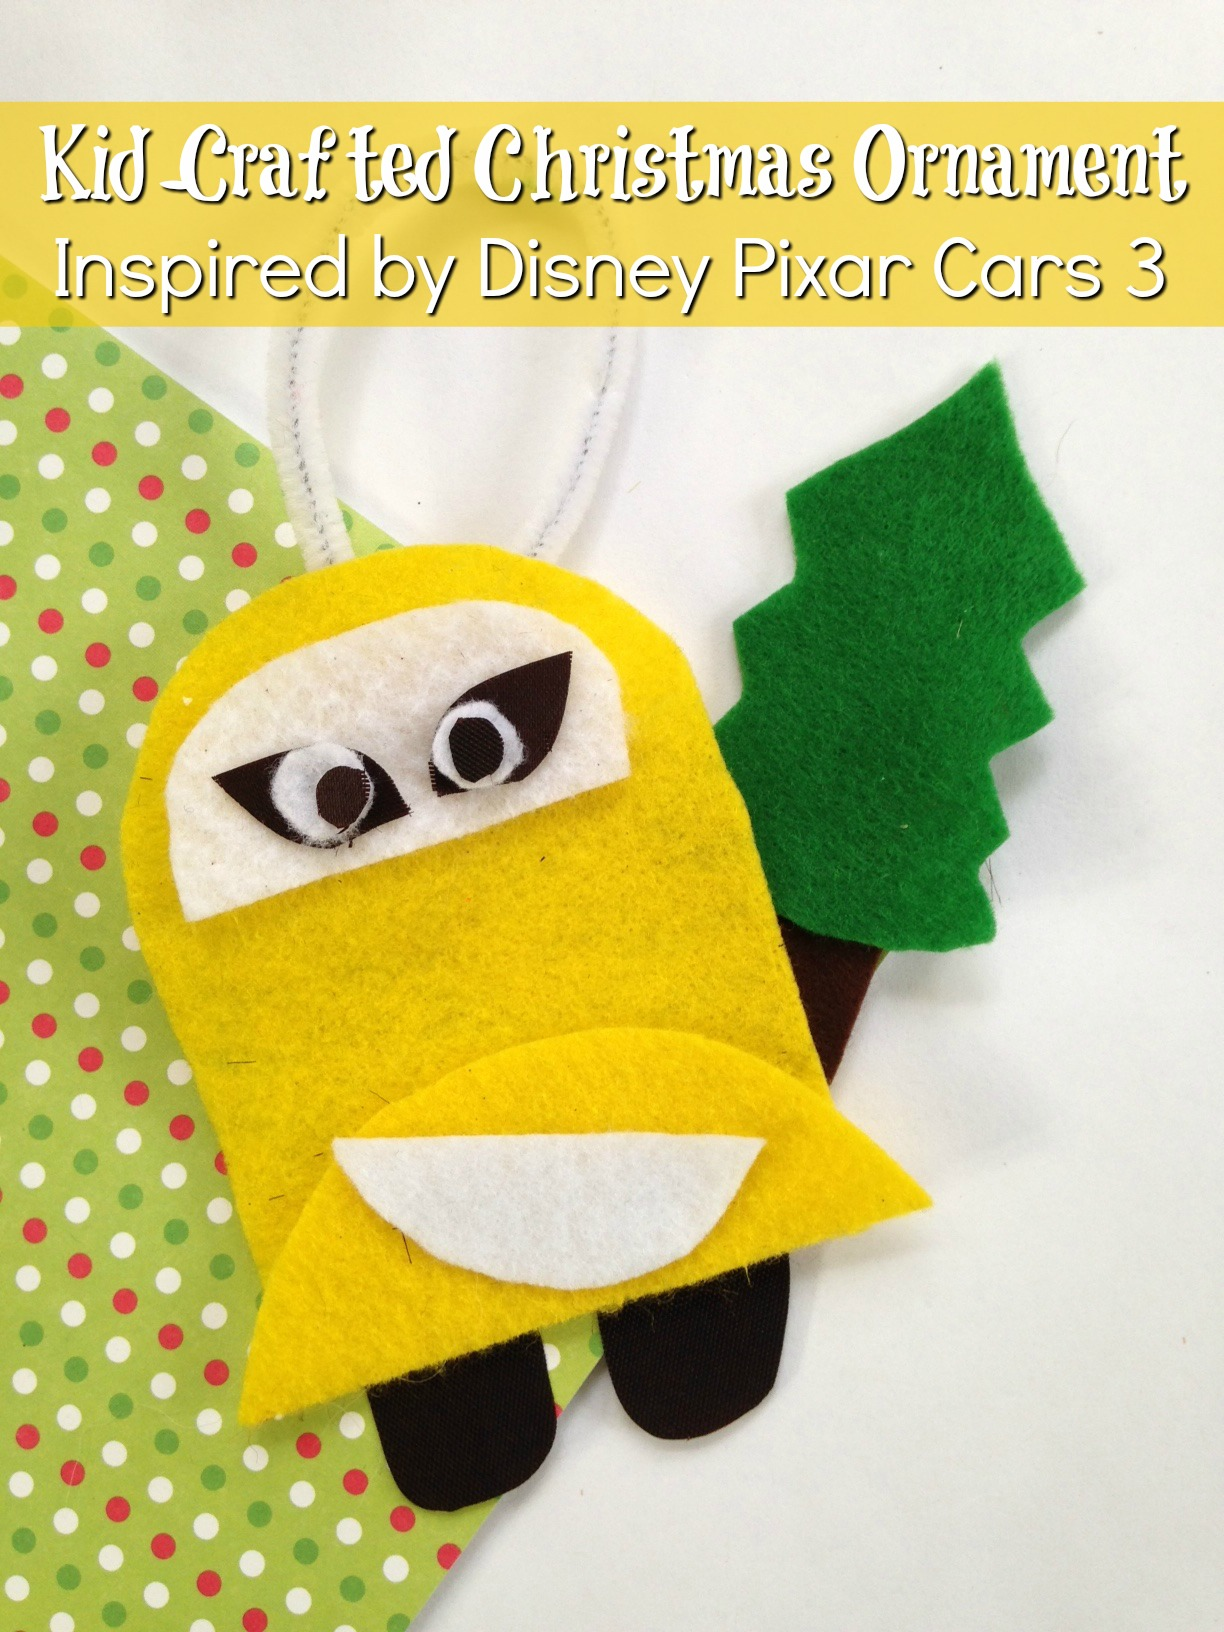 Cars 3 Christmas Ornament DIY